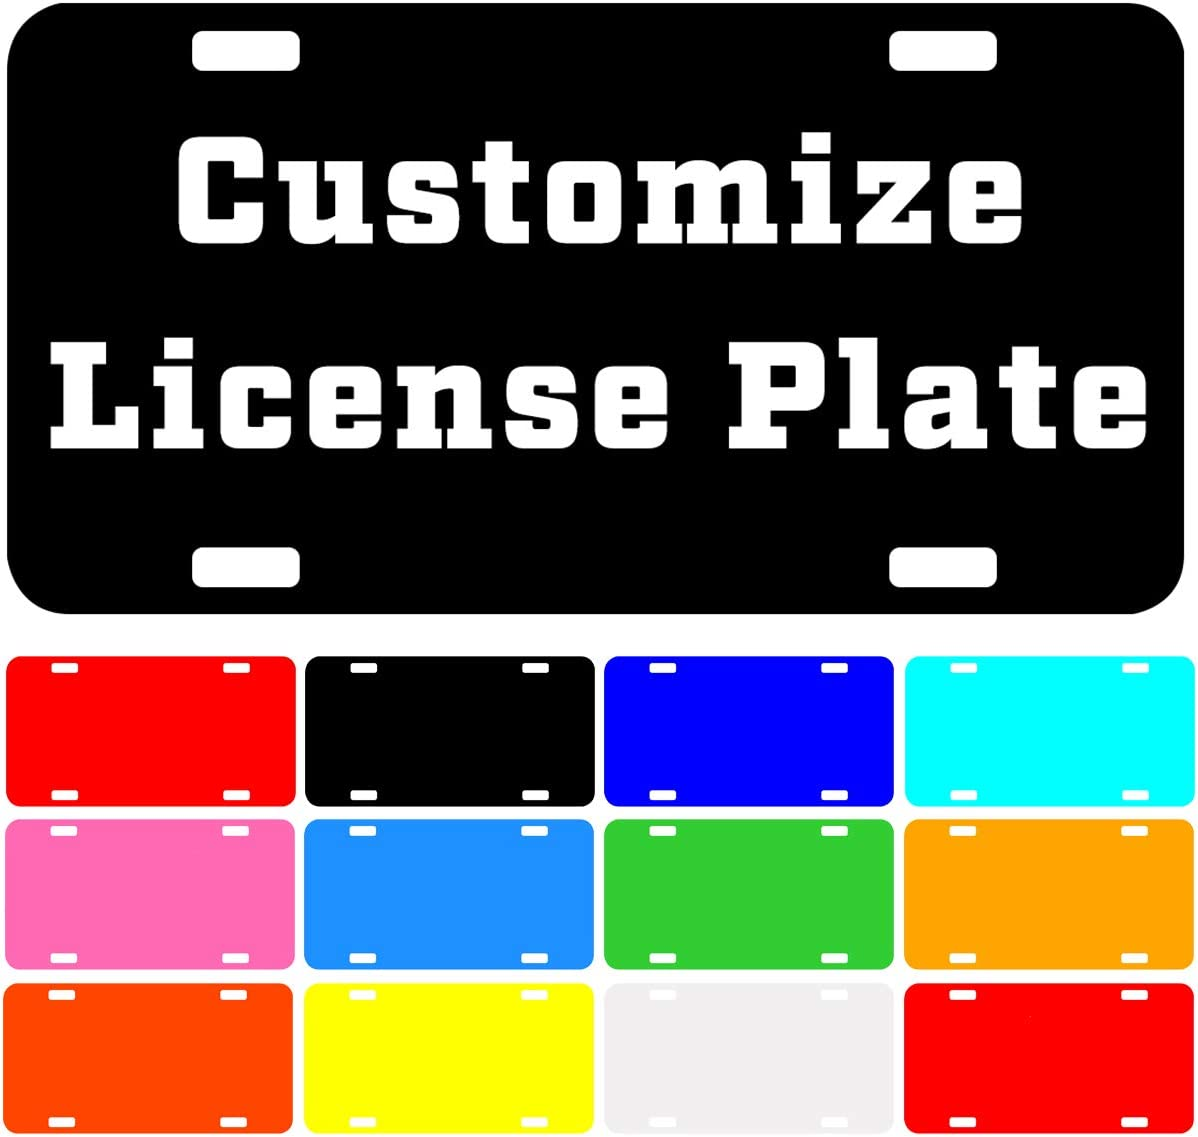 Guoyuan Chihuahua Fiesta Personalized License Plate Car,Durable Aluminum Metal Car Tag Novelty Home Decoration,Novely Aluminum License Plates 6 X 12 for Car